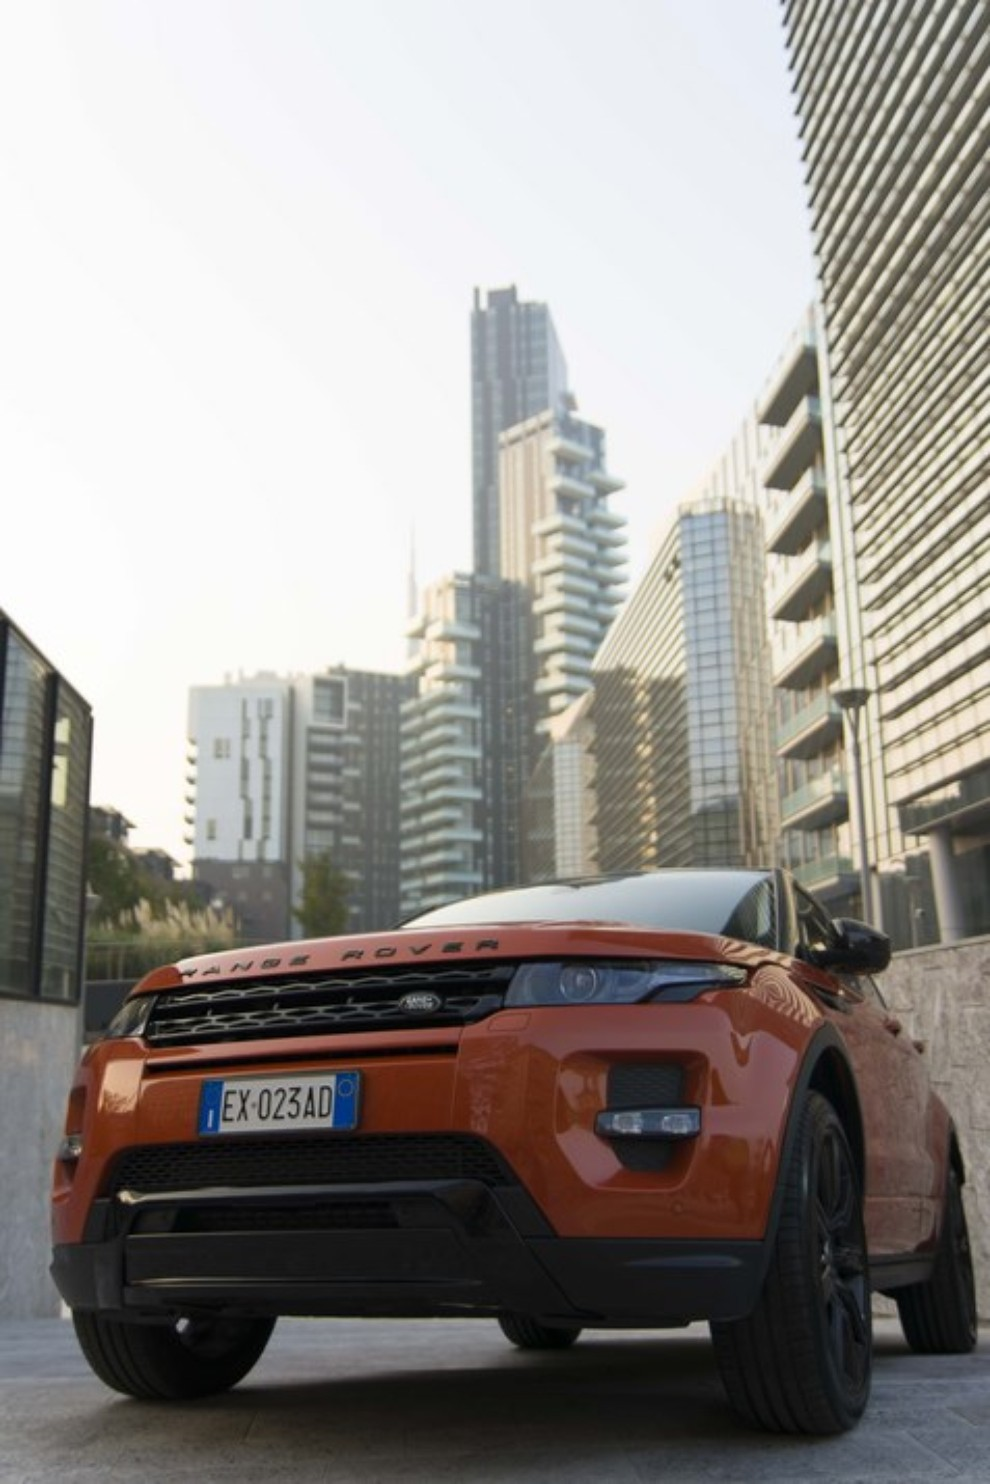 Land Rover New Discovery By Invitation Only Roma – Milano - Foto 7 di 12